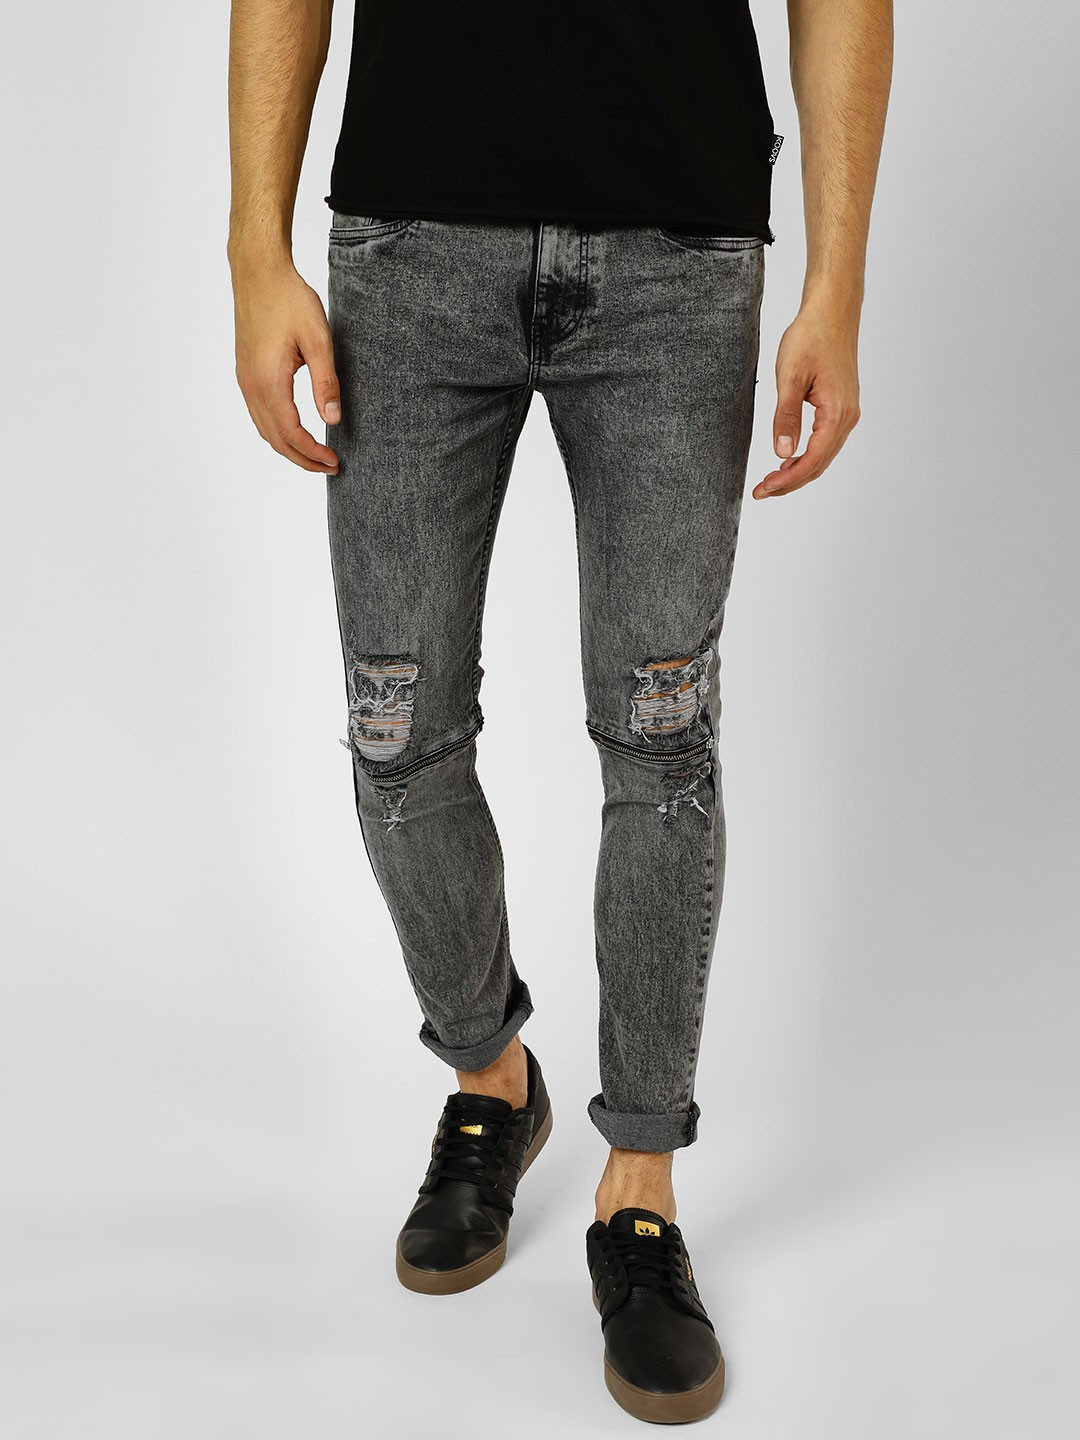 X.O.Y.O Grey Light Wash Distressed Skinny Fit Jeans 1